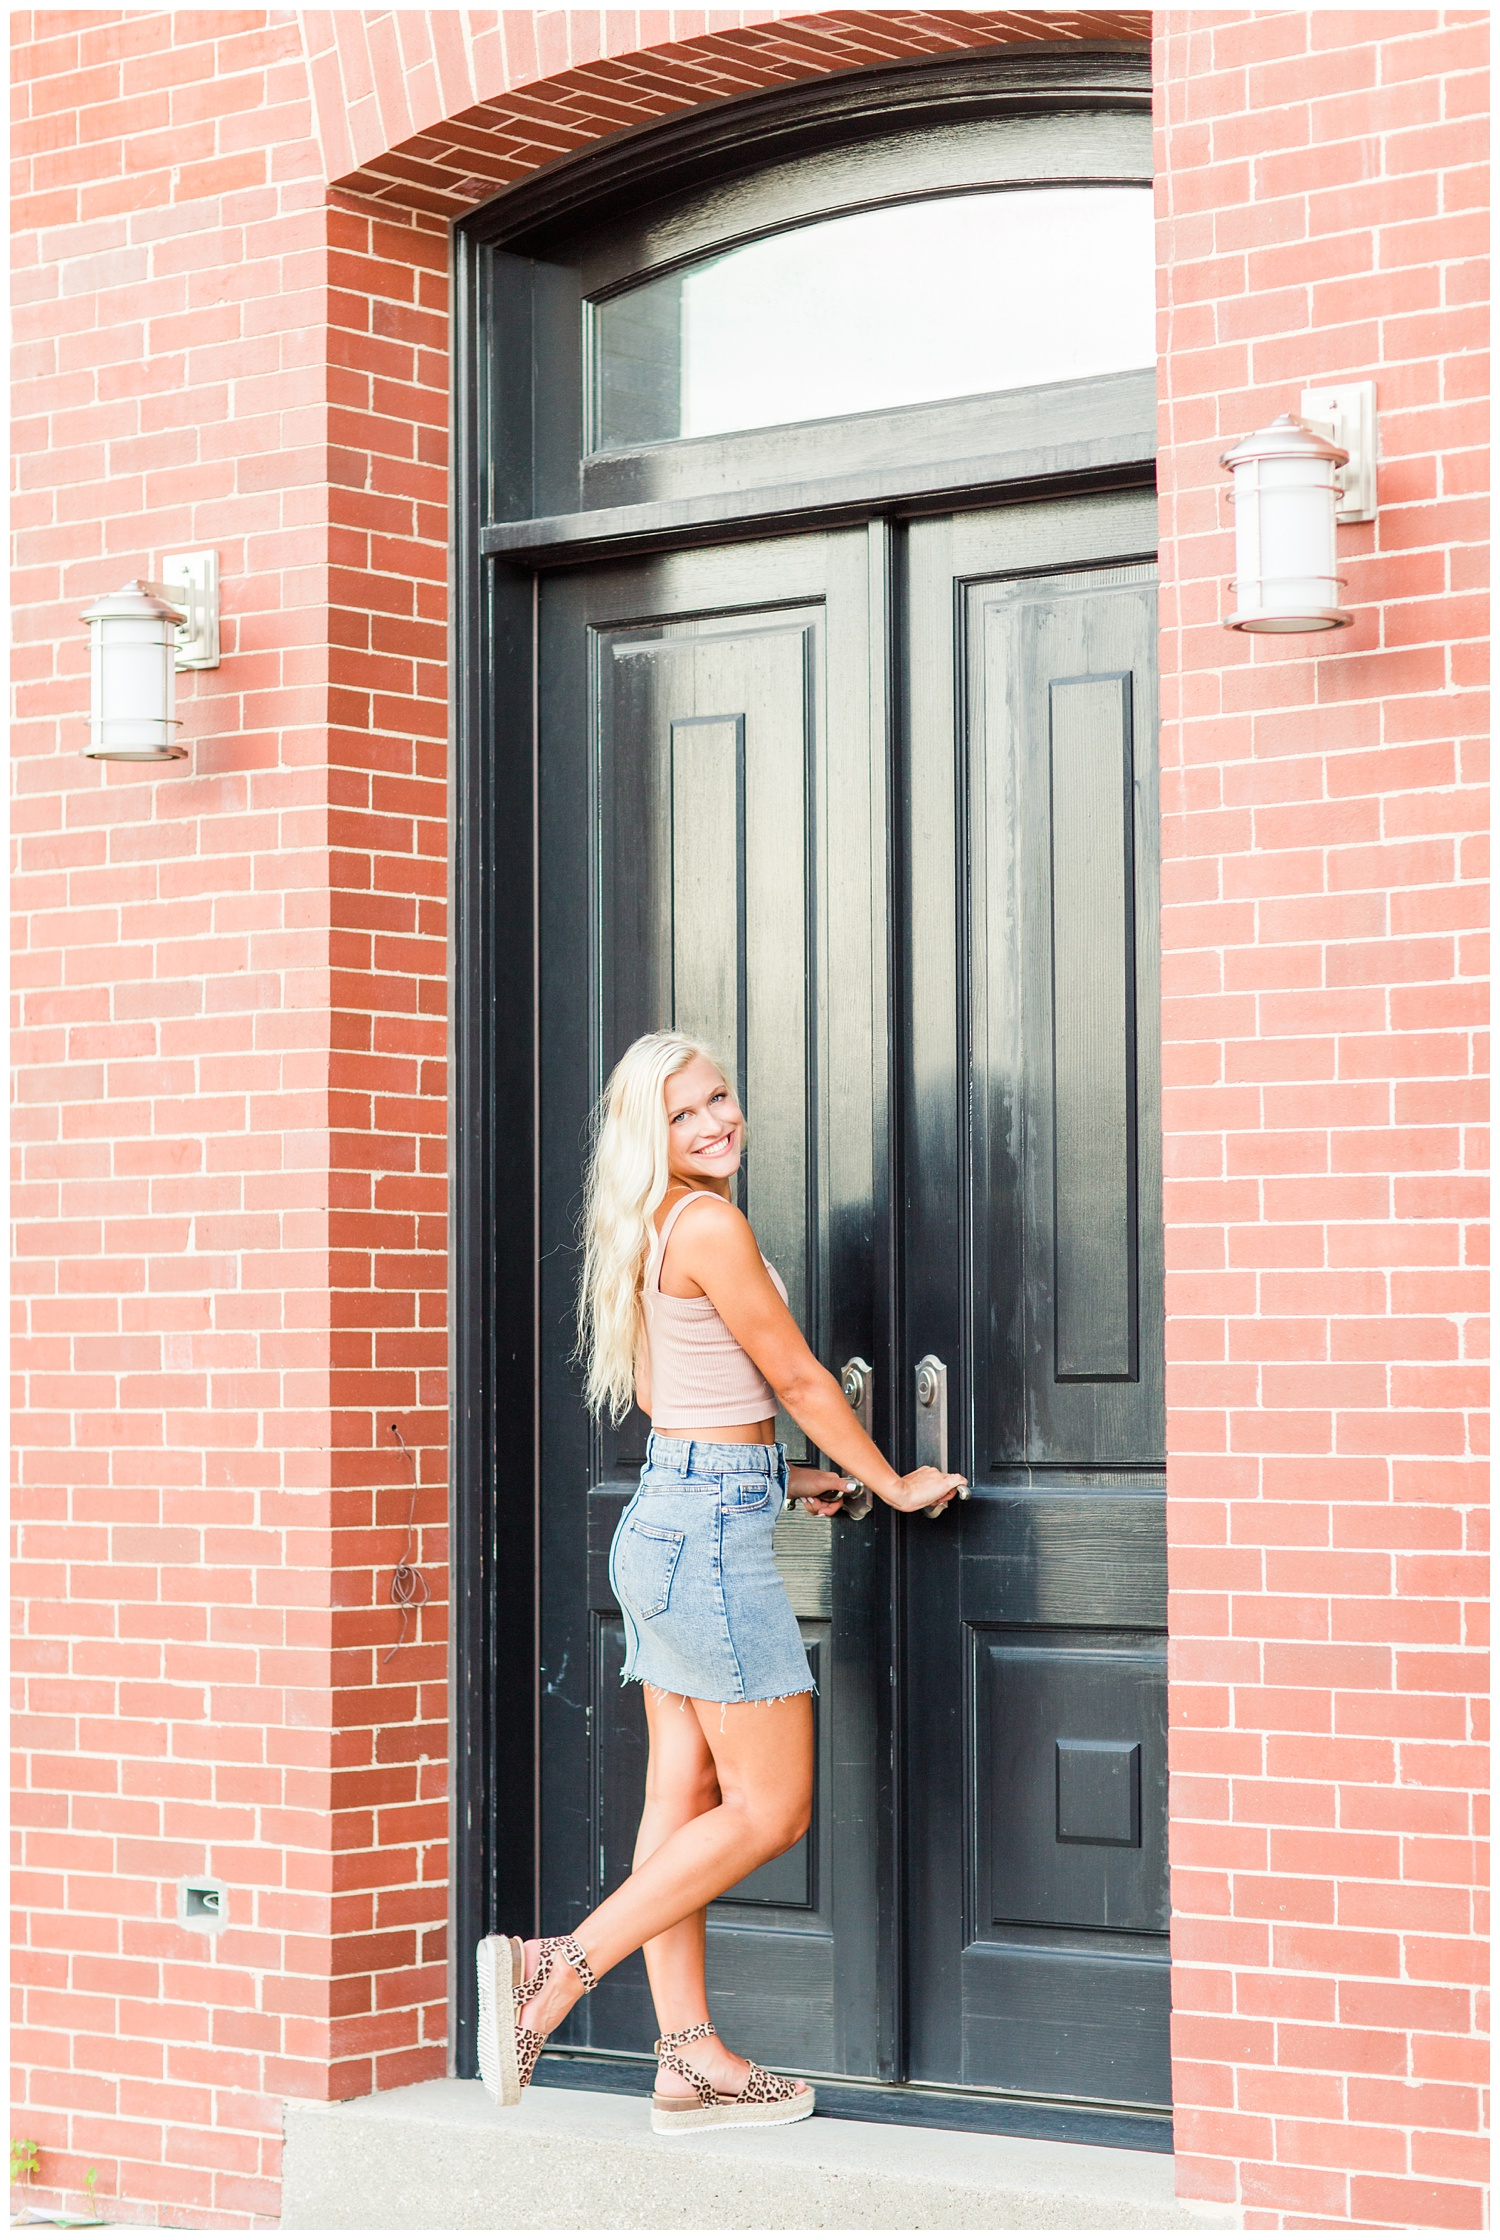 Senior girl laughs as she's about to enter a historic brick building with tall black doors in downtown Algona, Iowa | CB Studio